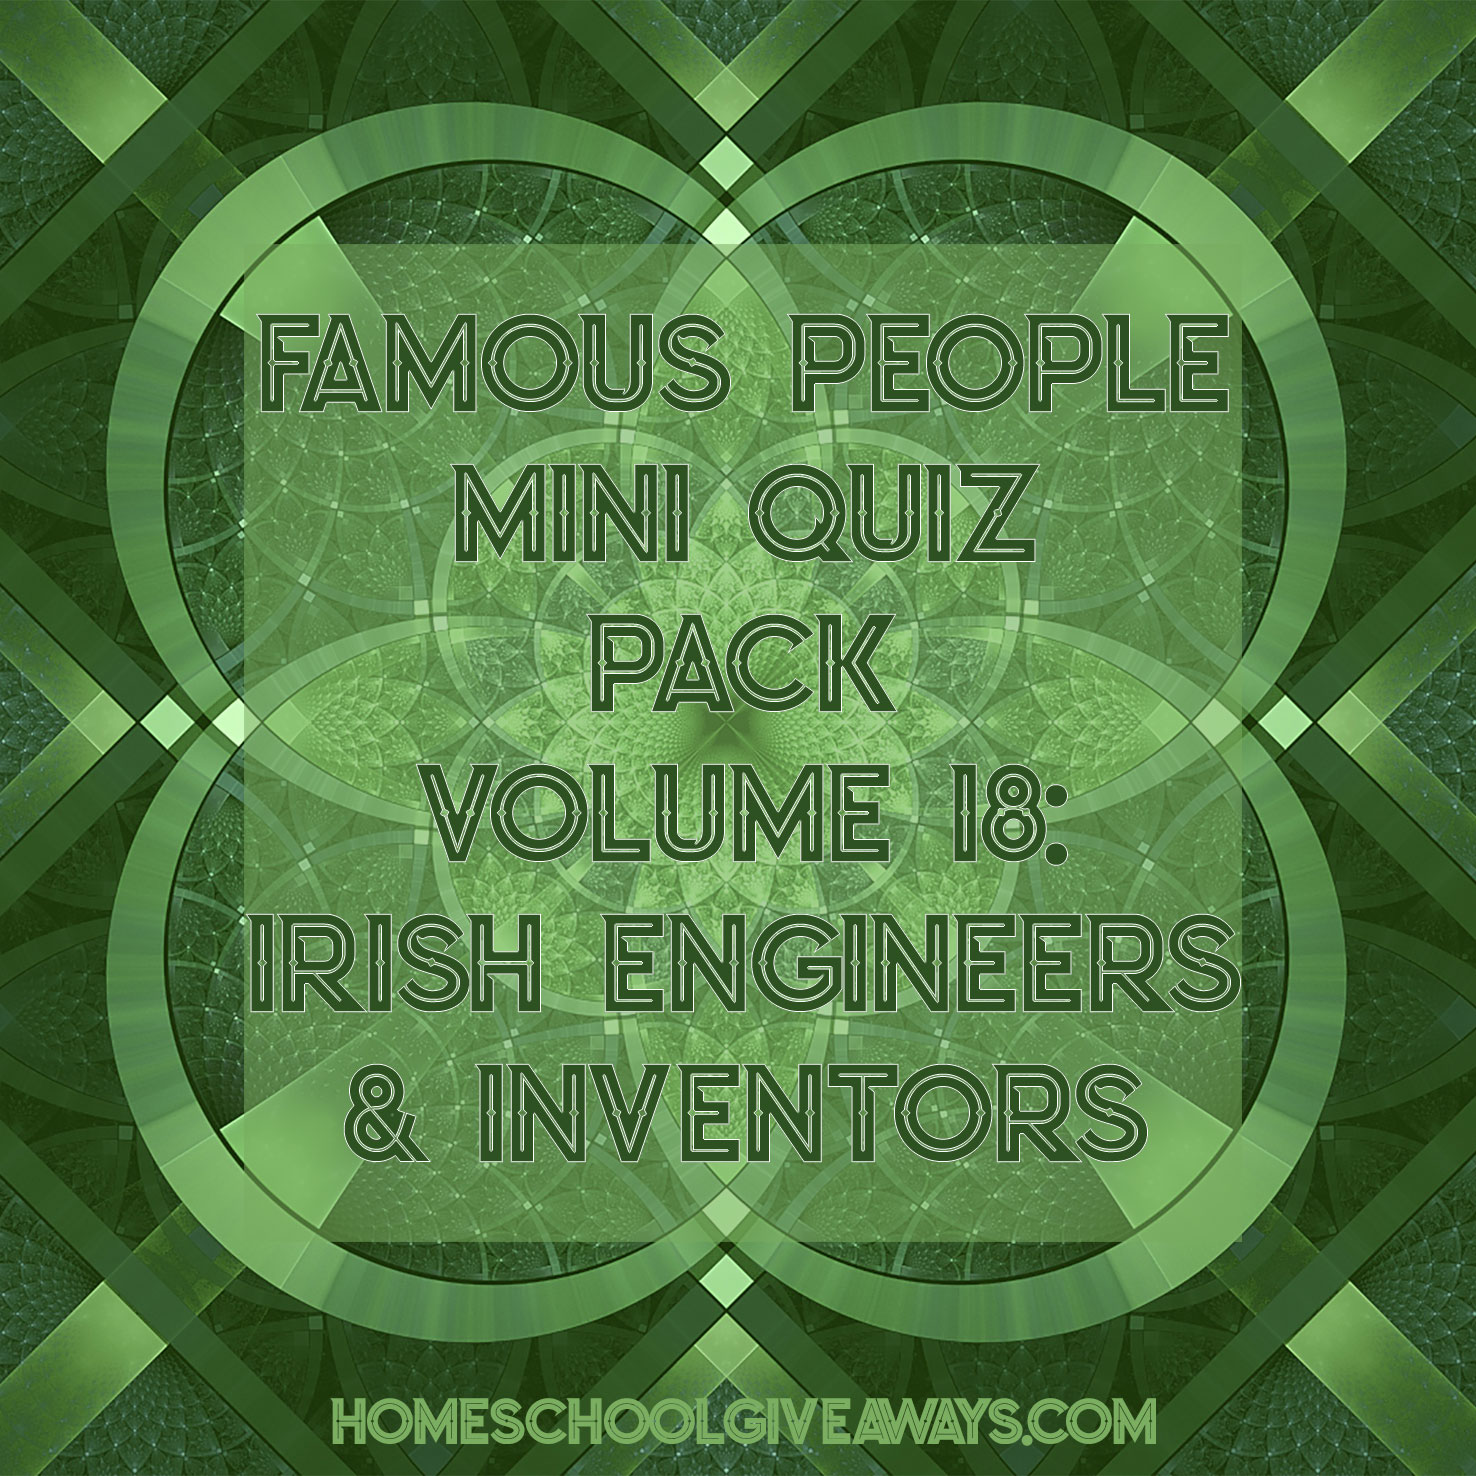 FREE Famous People Mini Quiz Pack Vol. 18 – Irish Engineers & Inventors